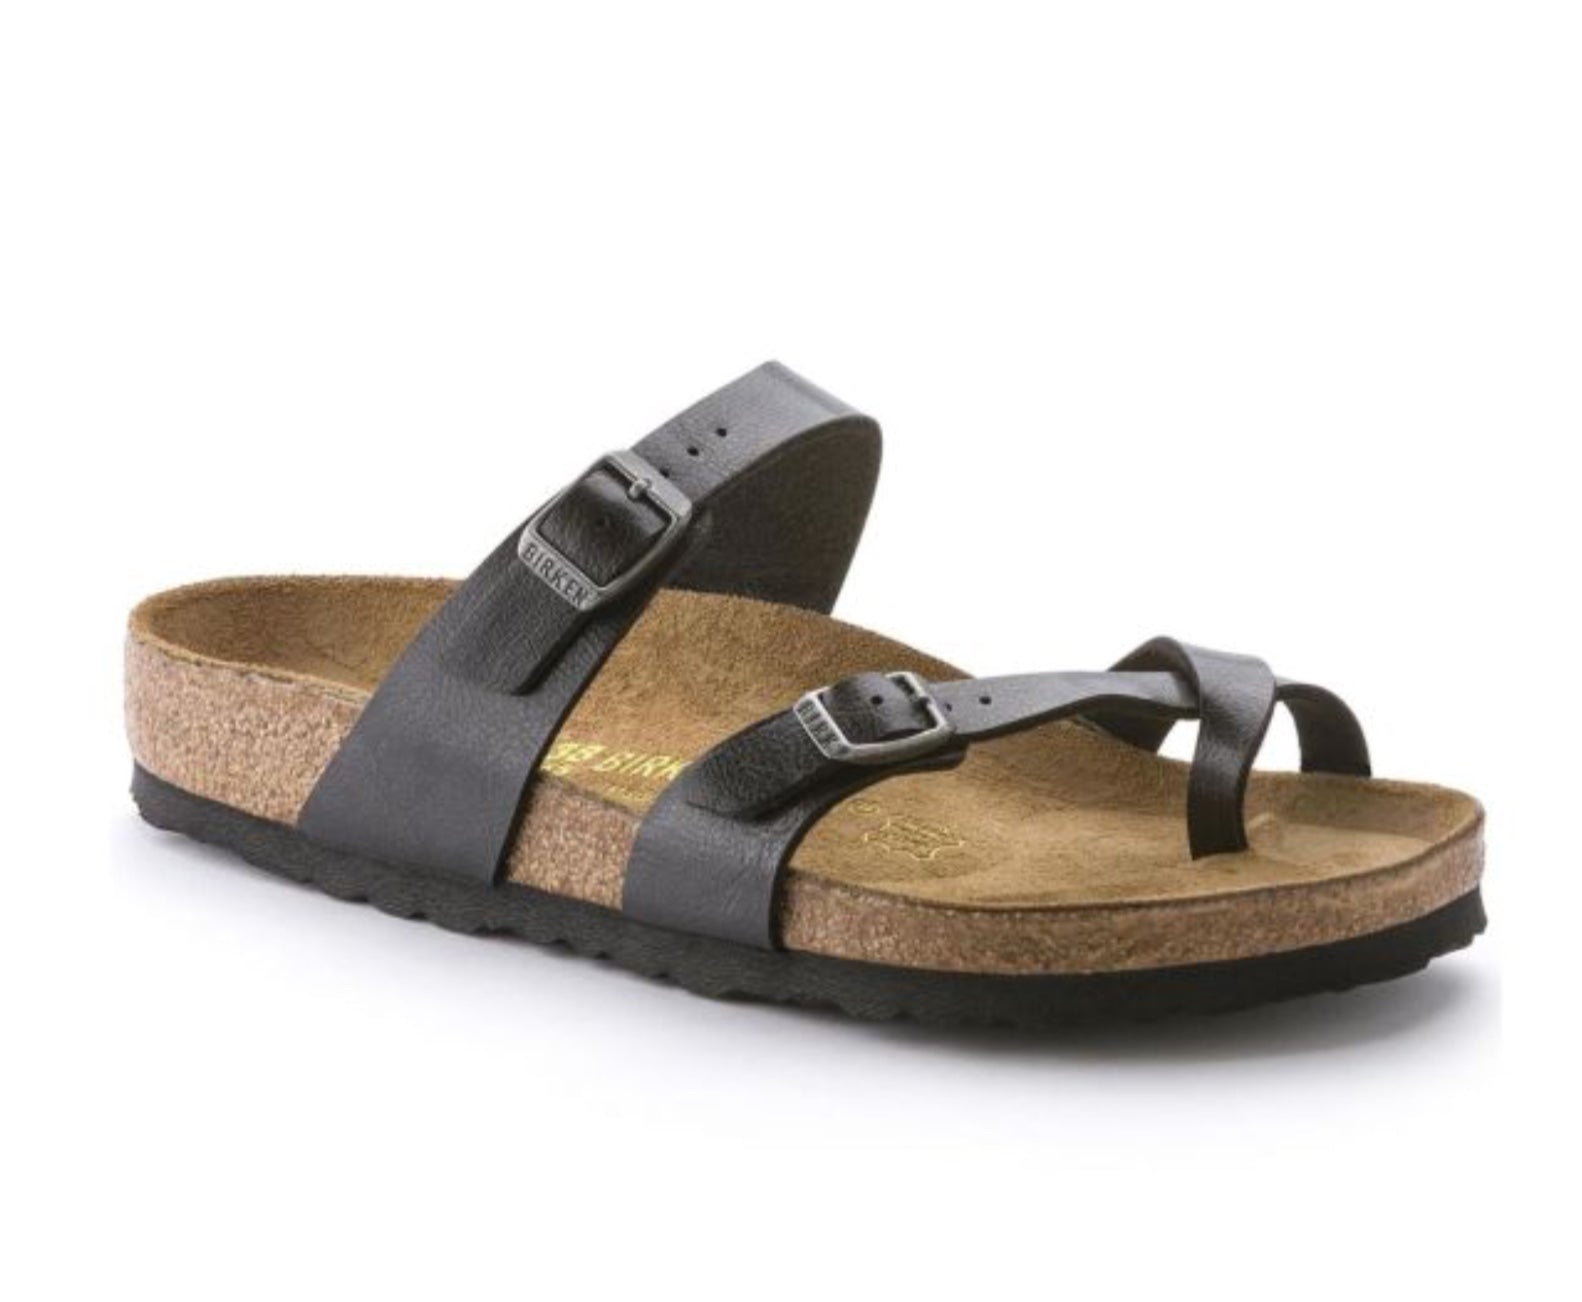 Birkenstock - Mayari - Graceful Licorice - Sole Sister Shoes